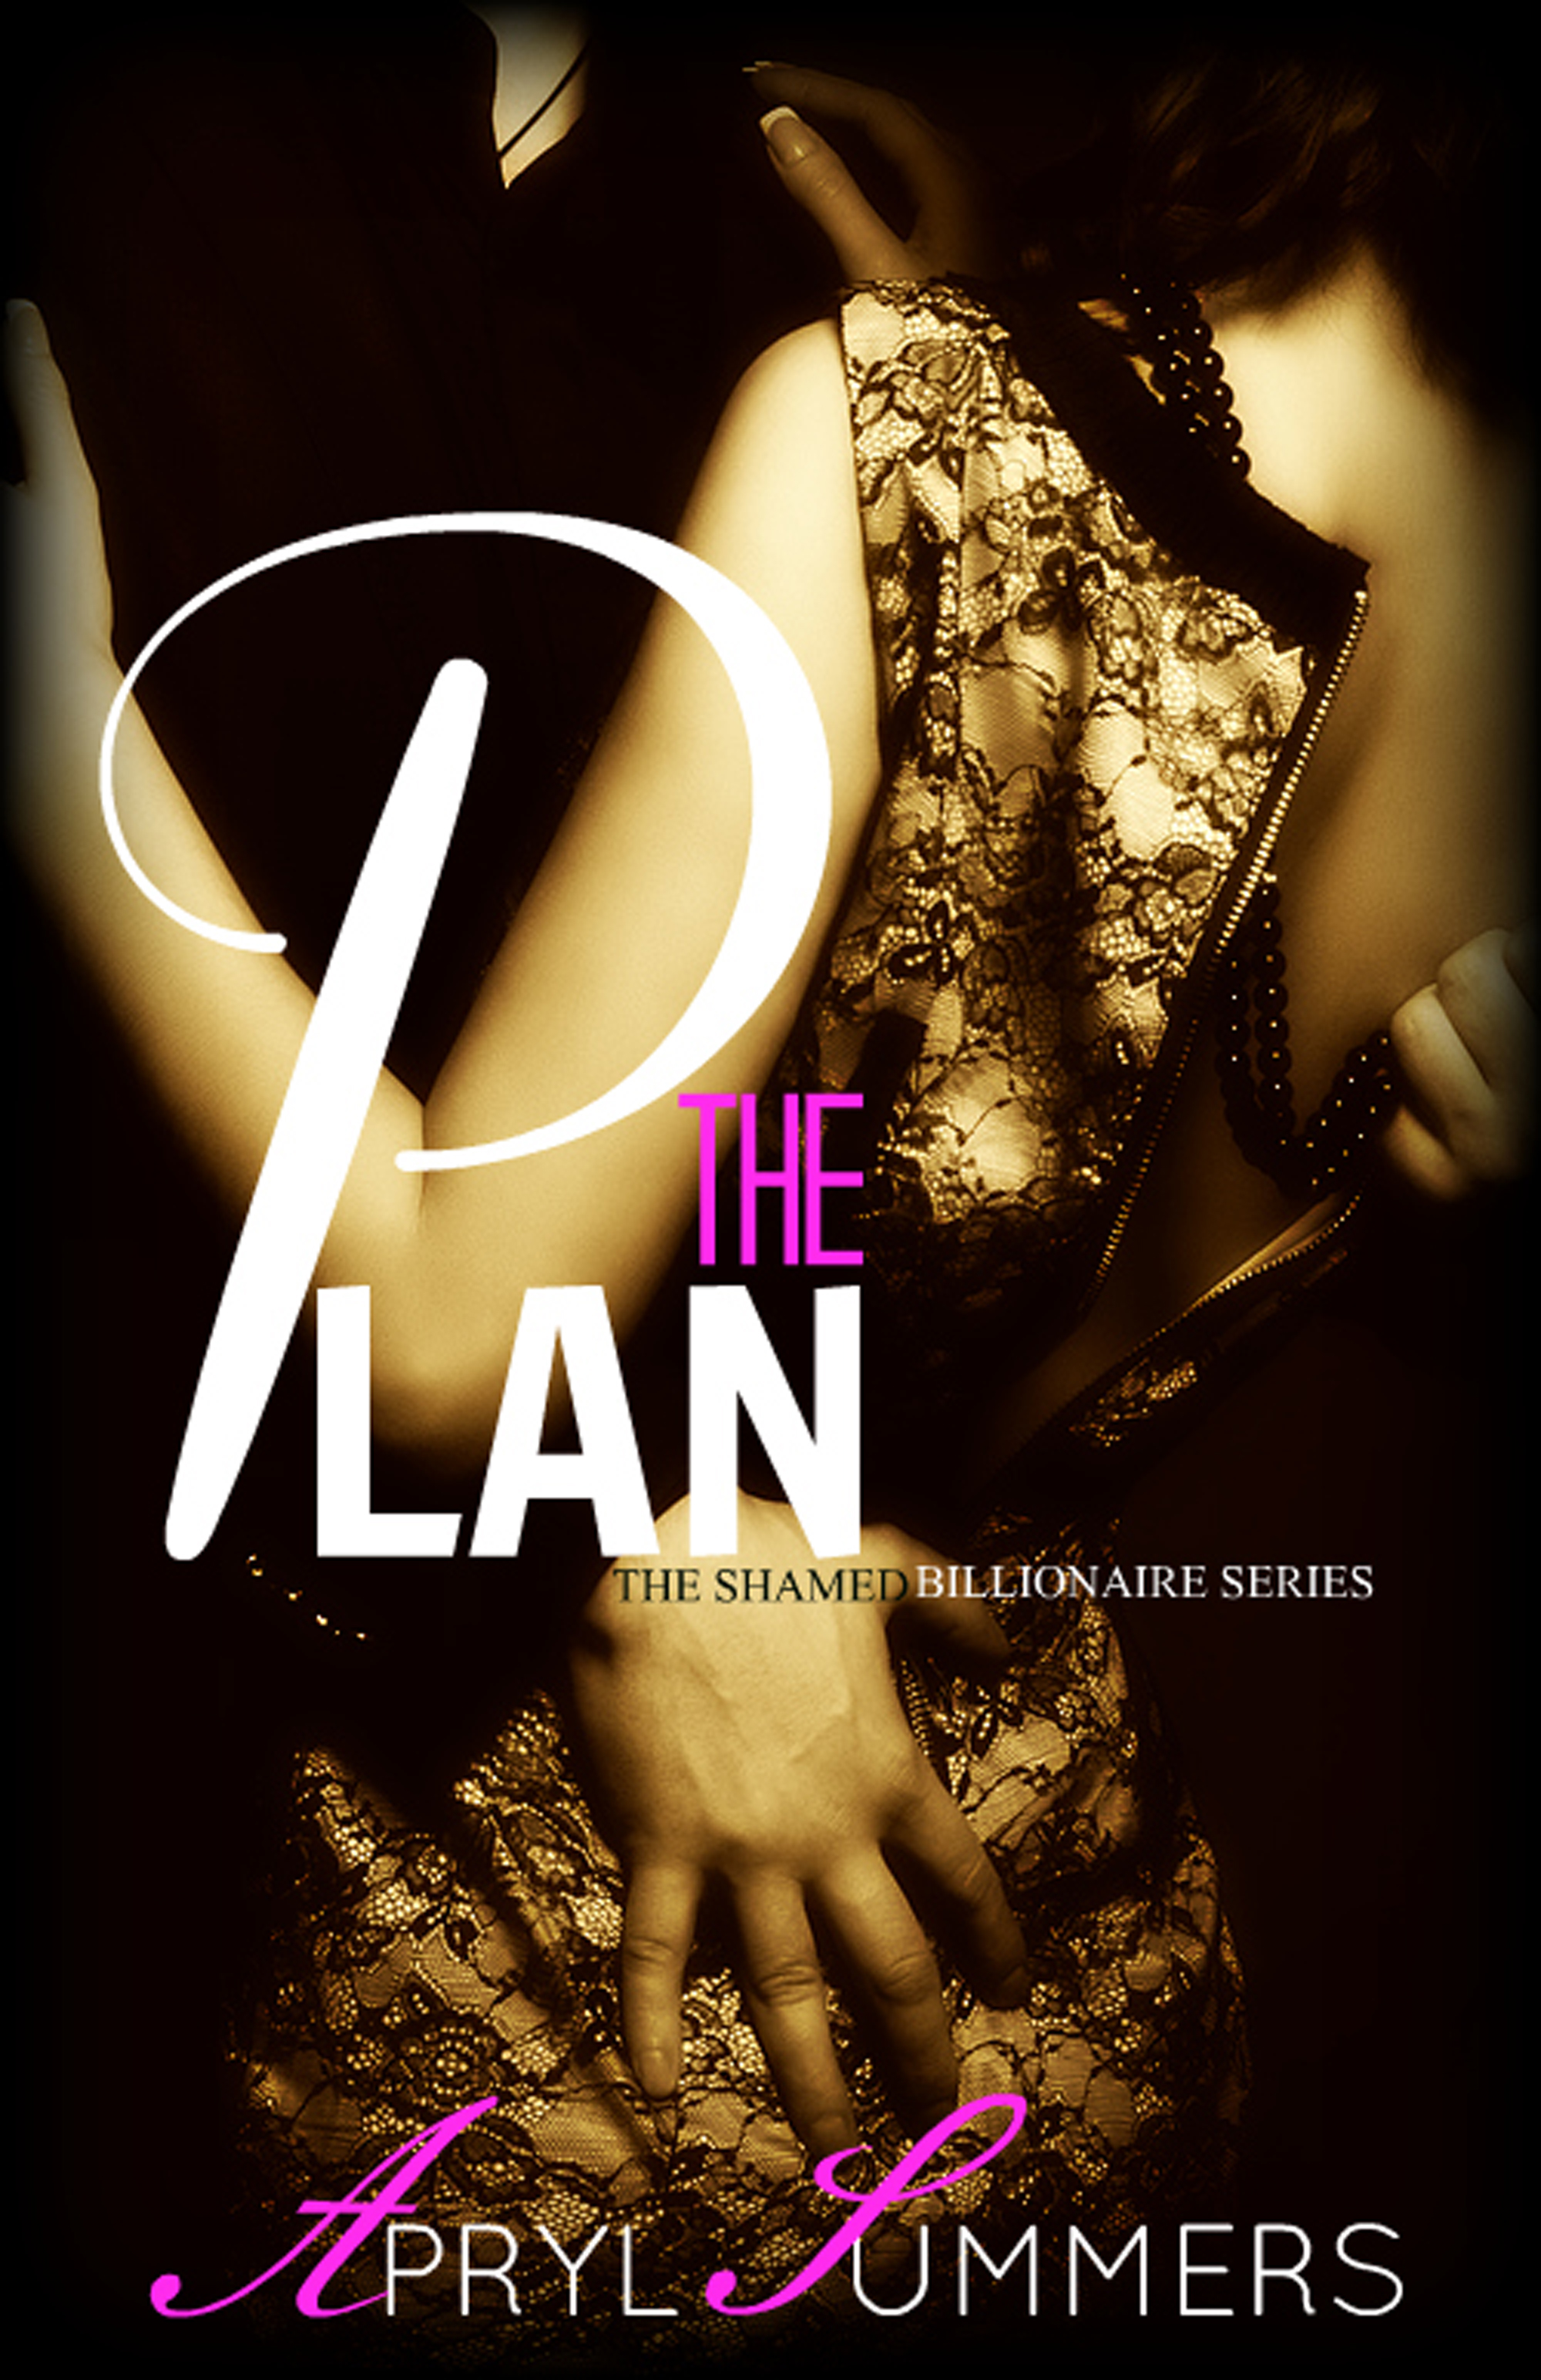 The Plan, Erotica FINAL COVER.jpg